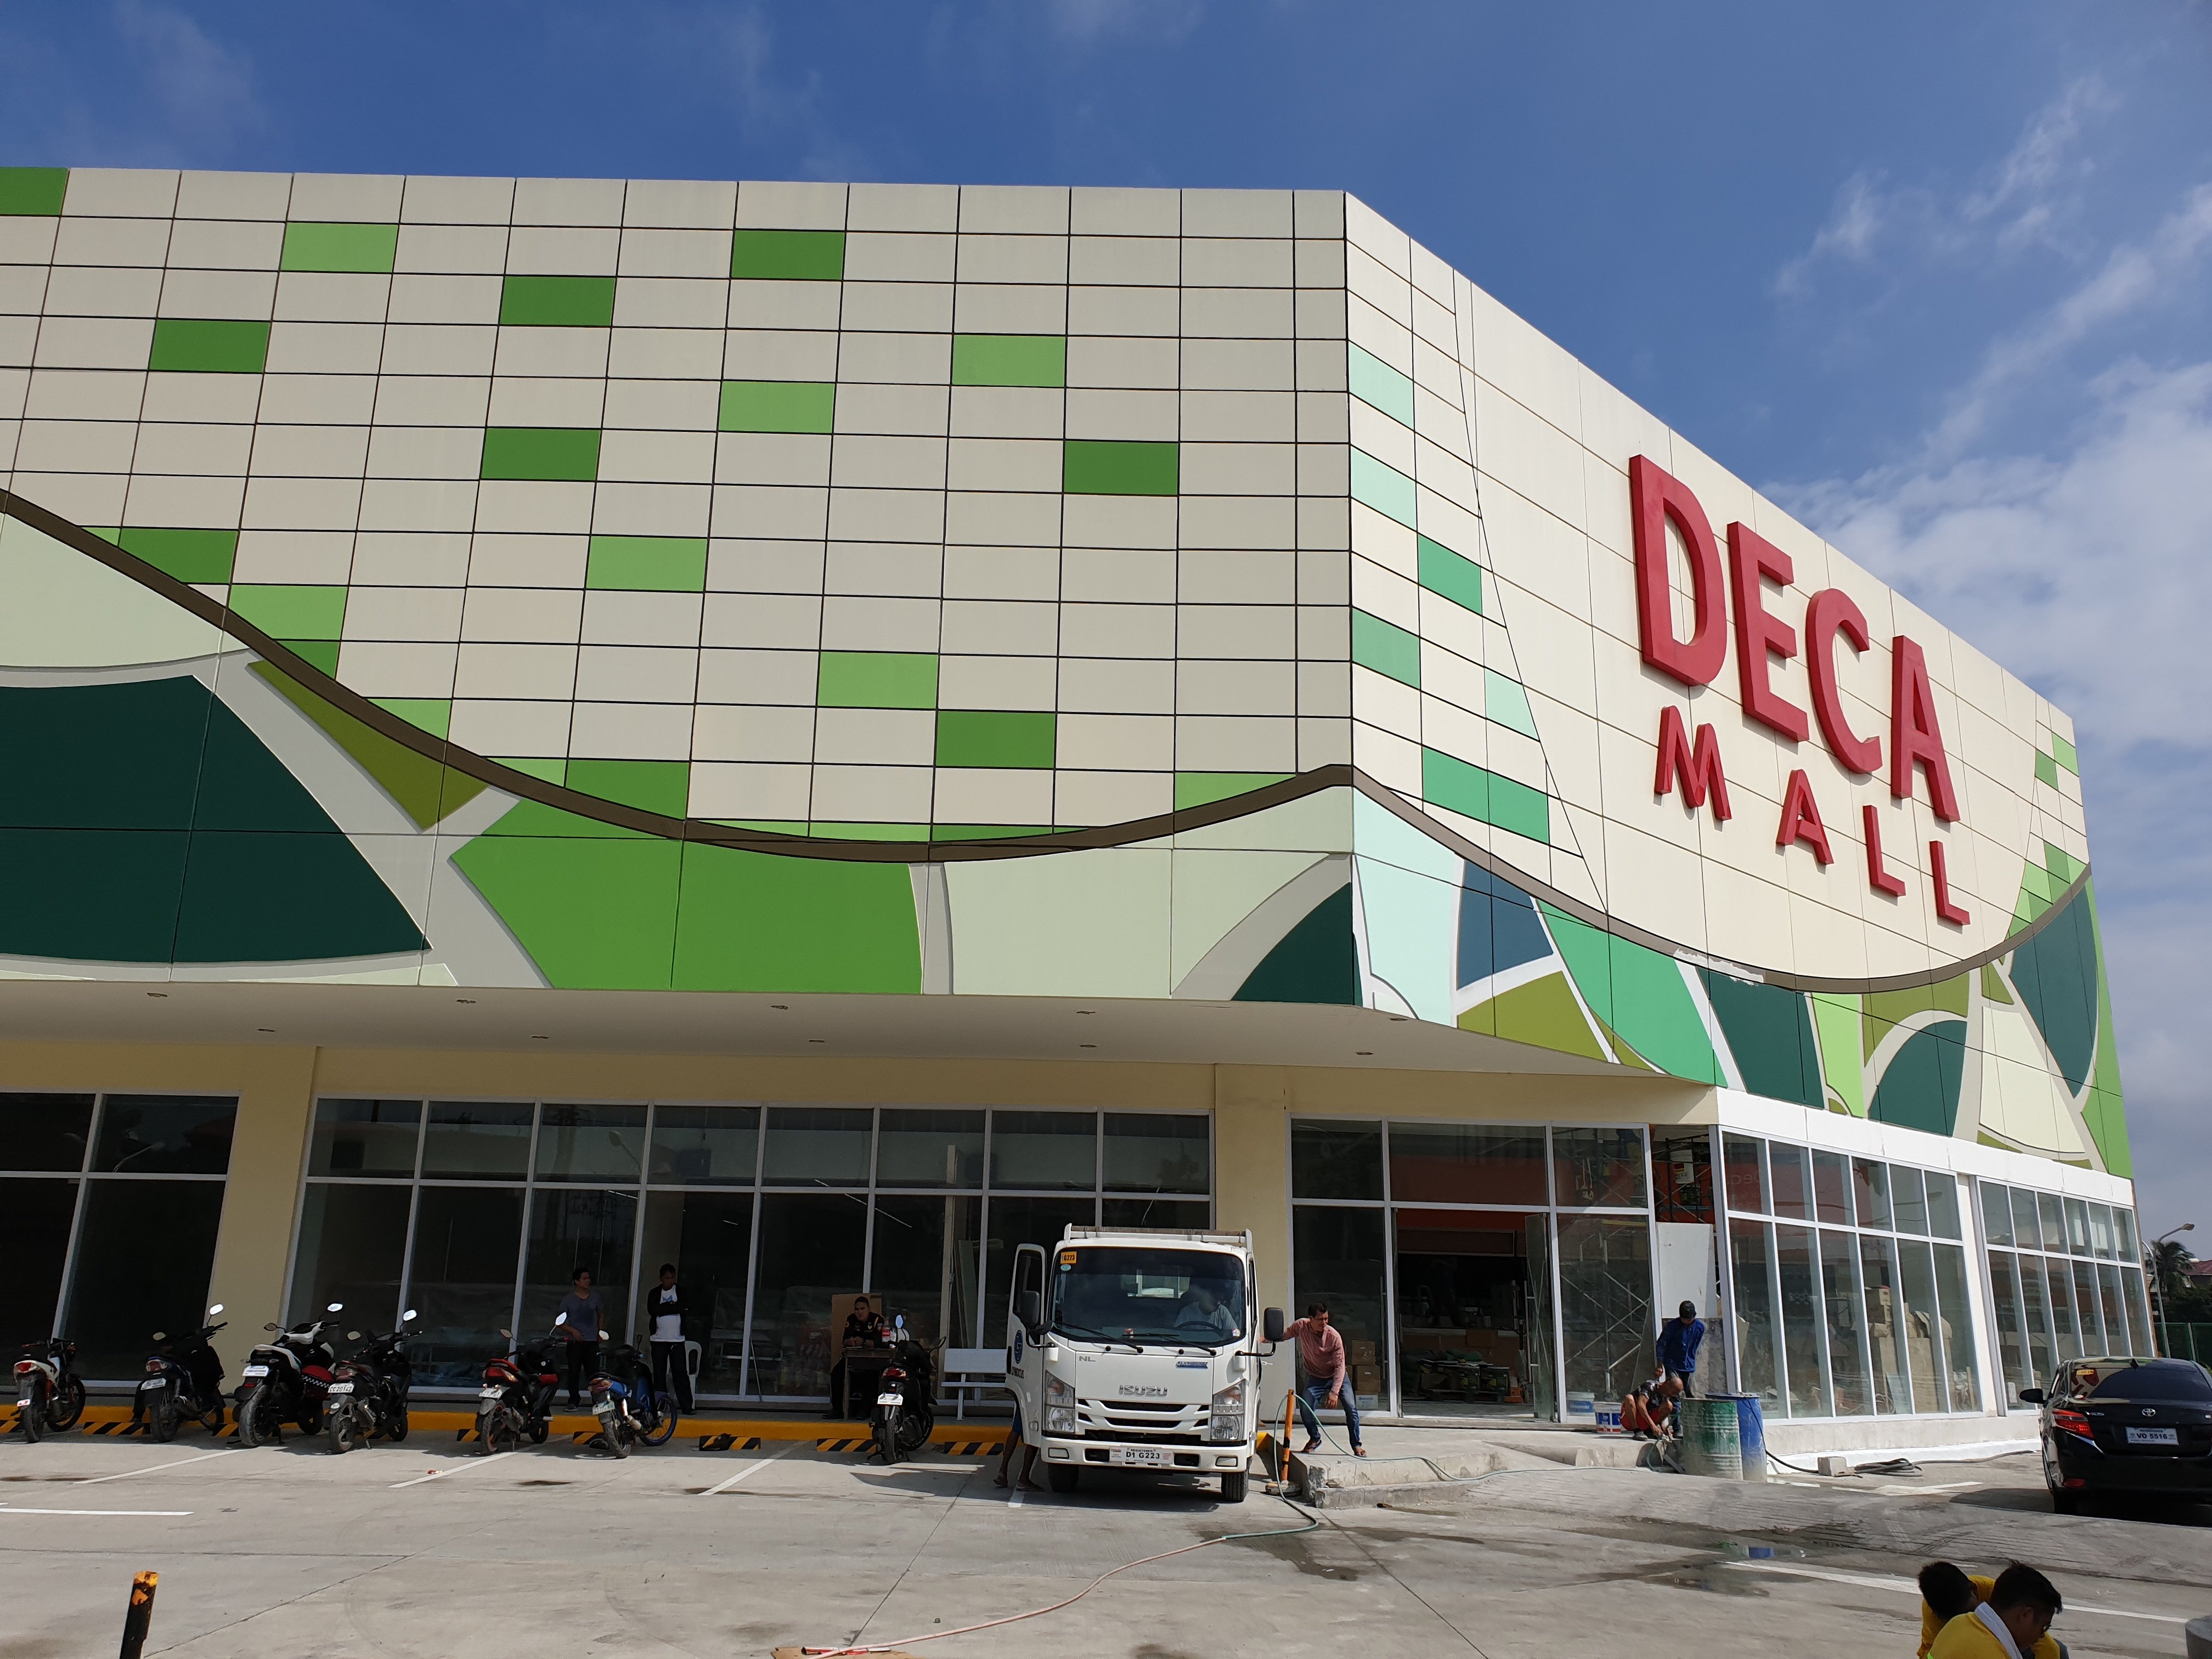 Deca Mall Building